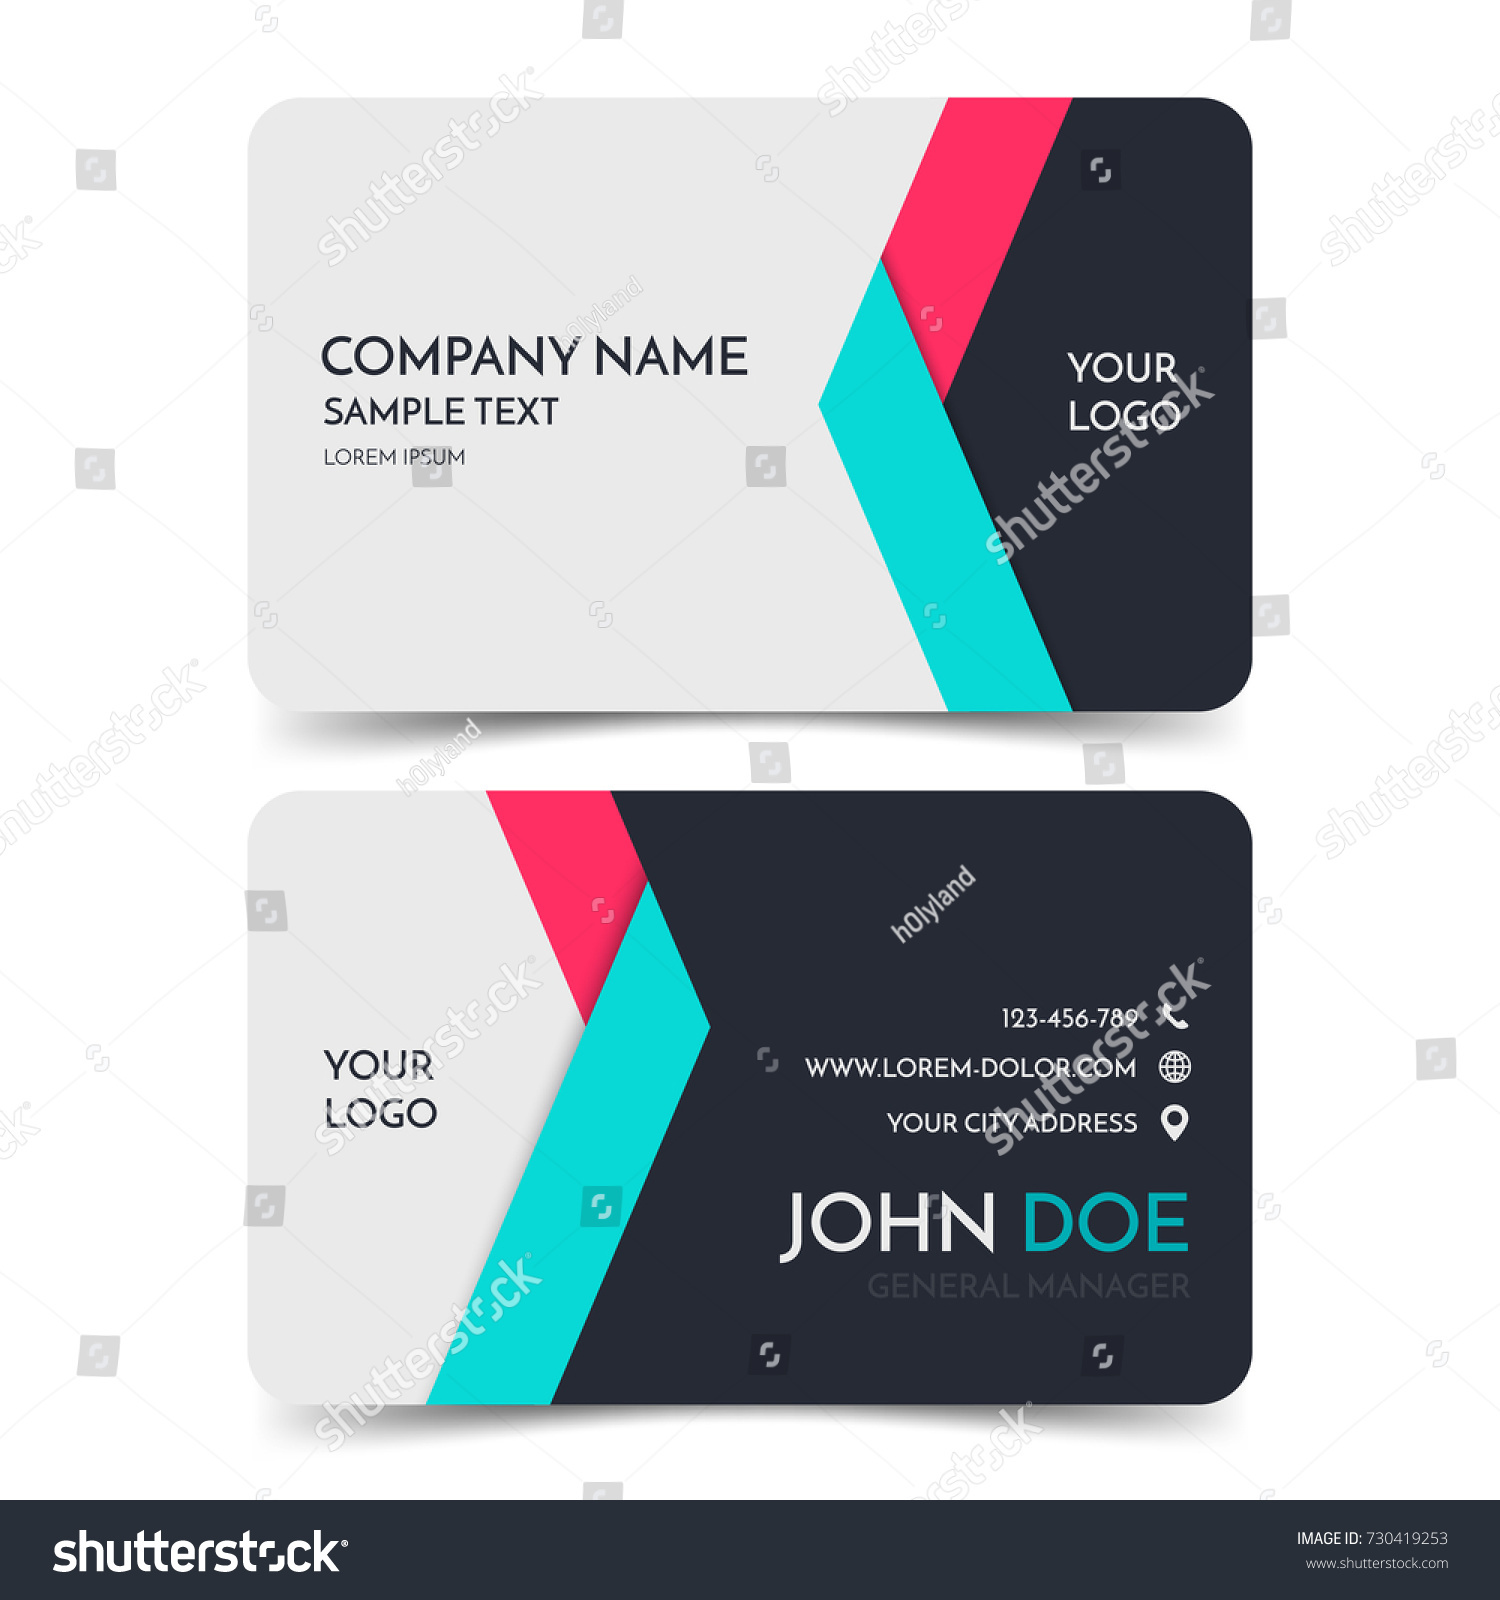 Red Blue Modern Business Card Template Stock Vector HD (Royalty Free ...